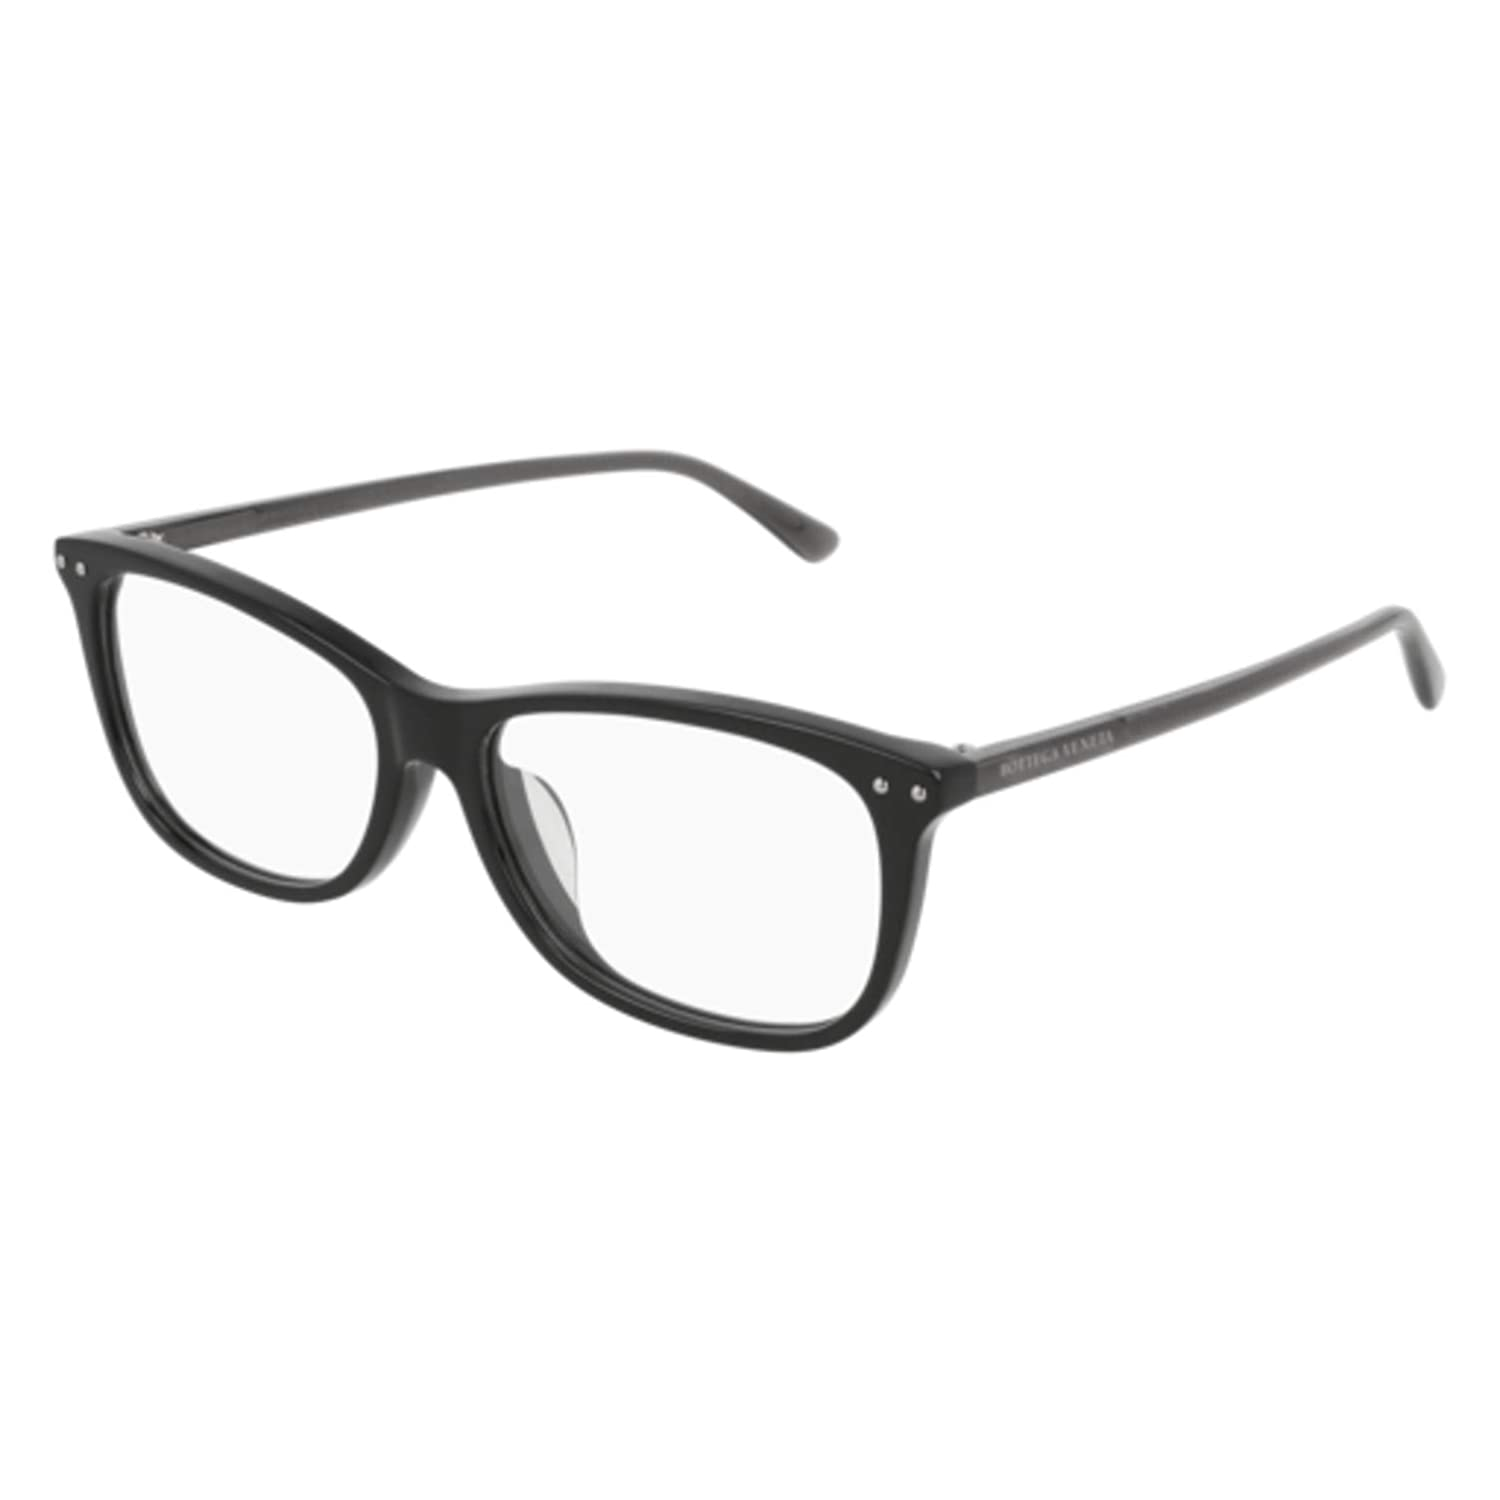 Eyeglasses Bottega Veneta BV 0164 OA 001 BLACK//GREY